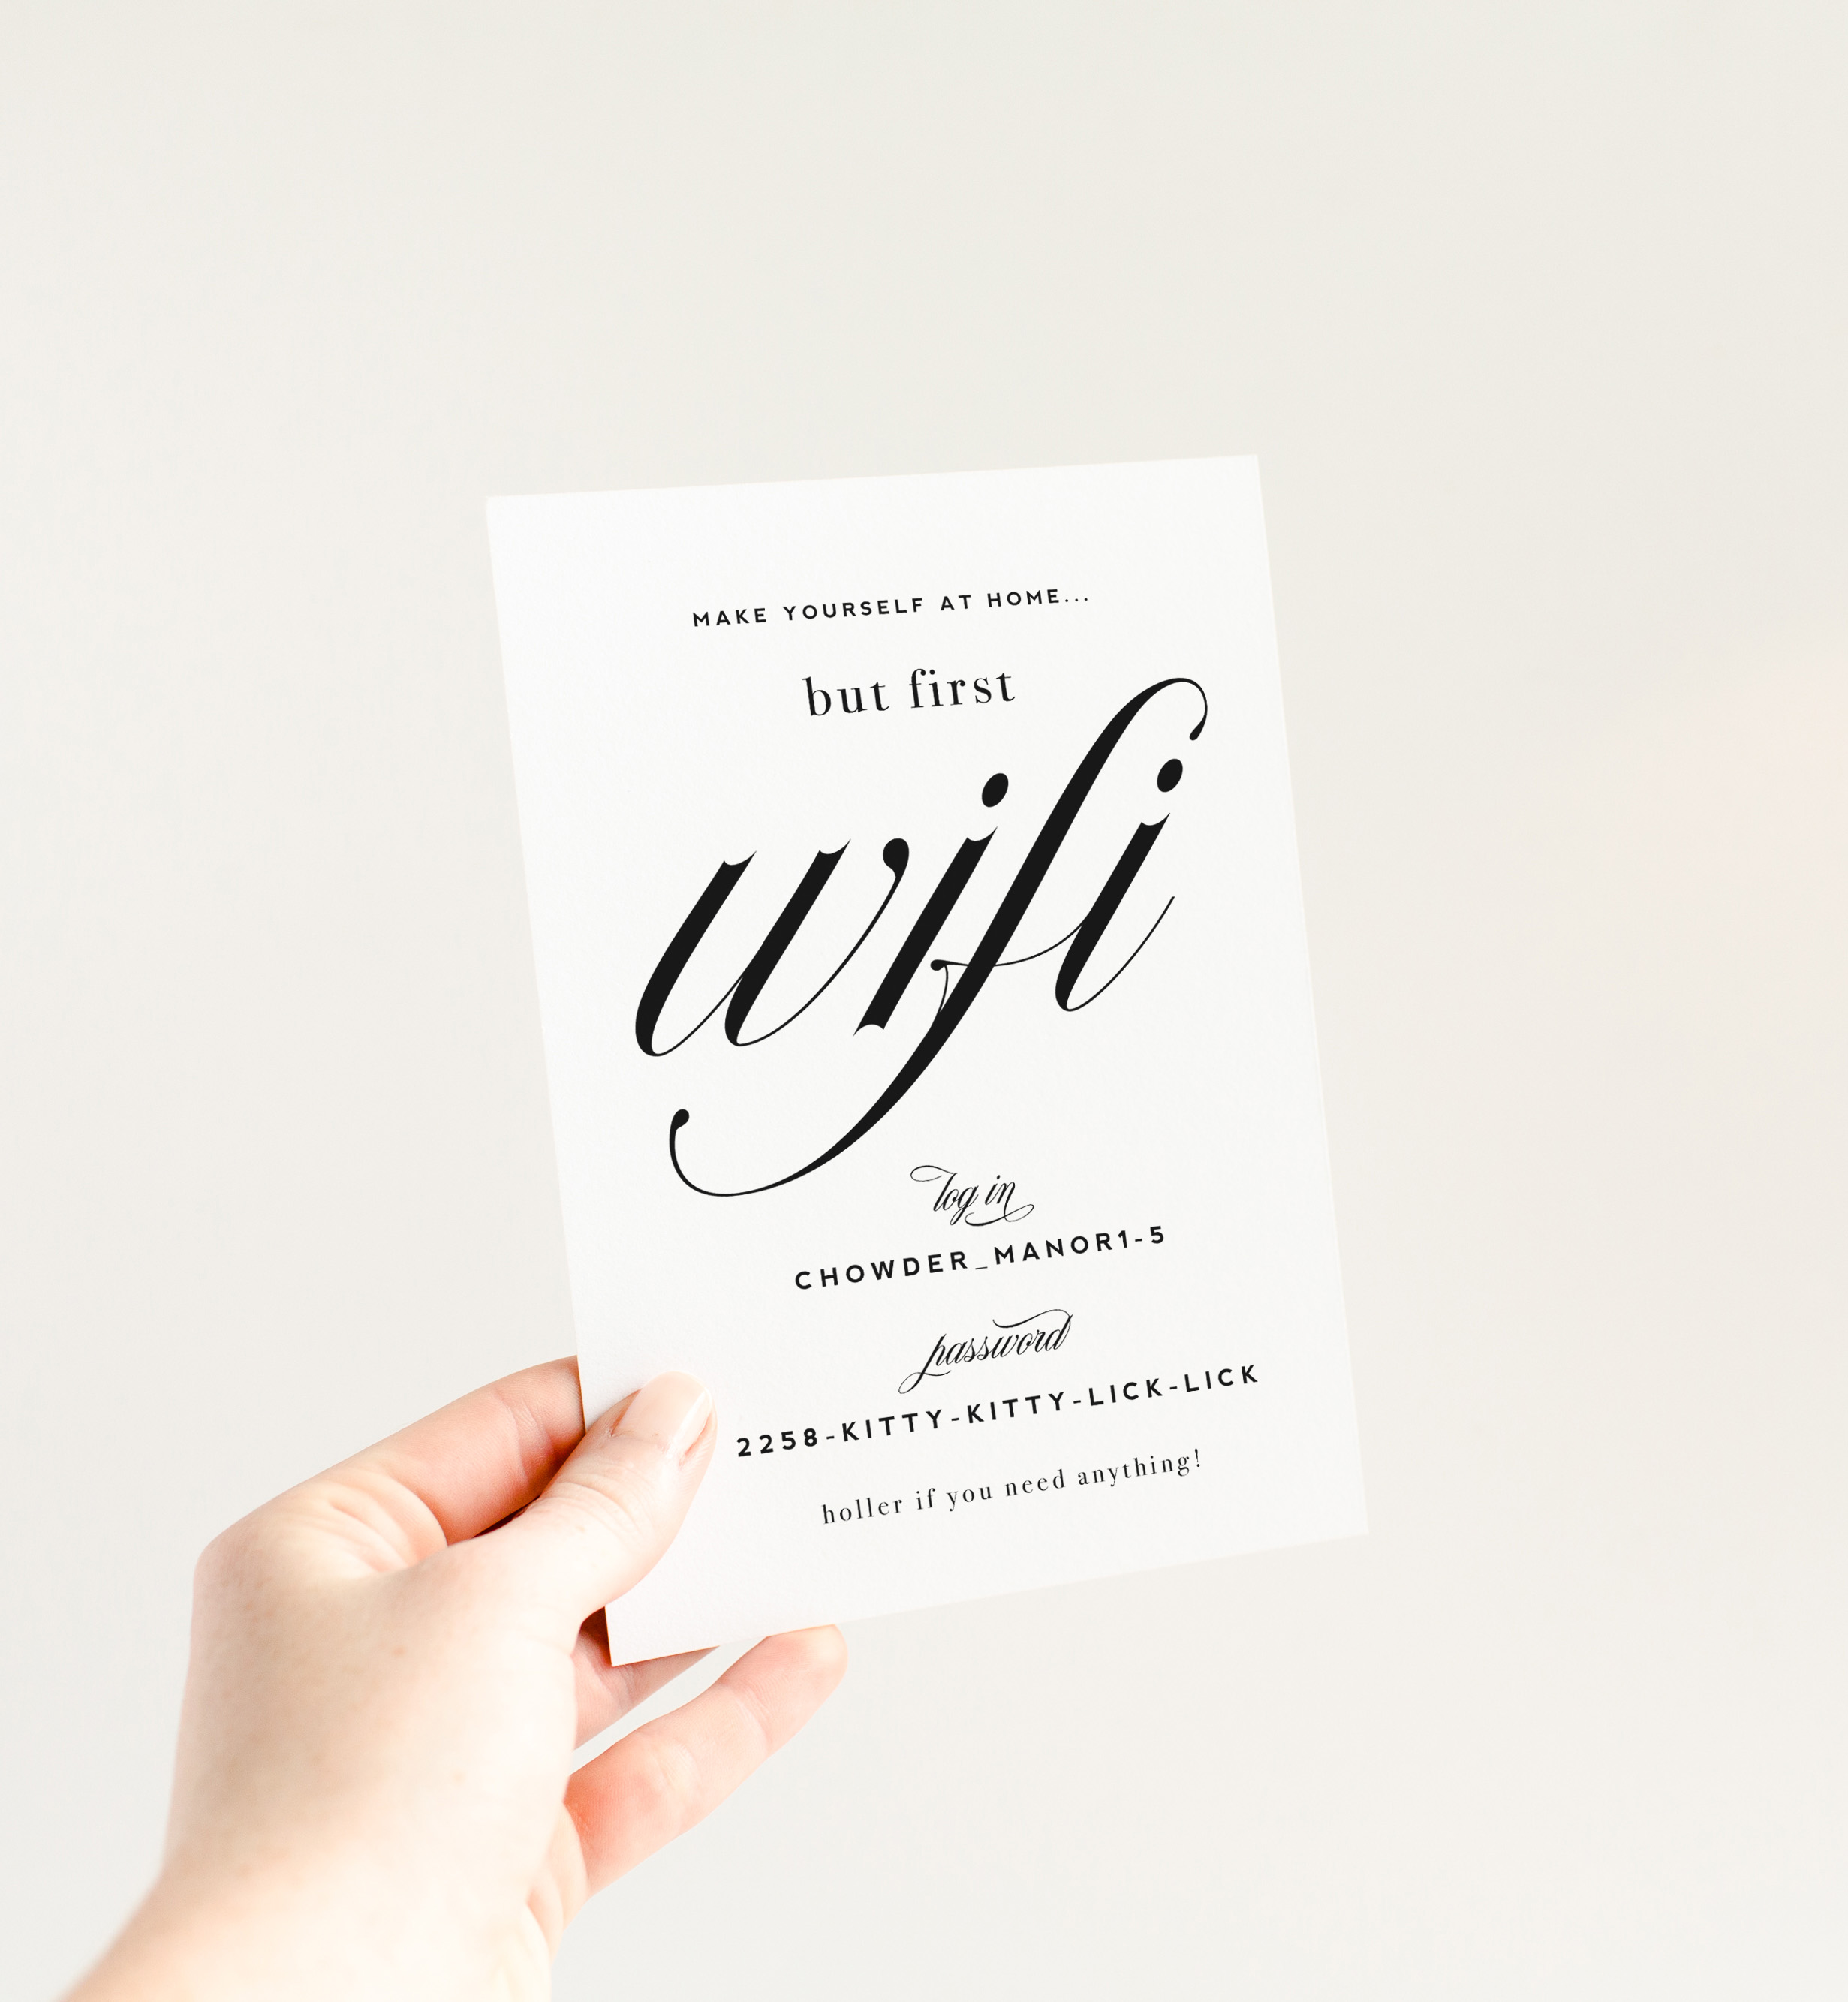 image regarding Wifi Password Sign Printable titled Kitty Meow Boutique Paper Social gathering Solutions, Greeting Playing cards